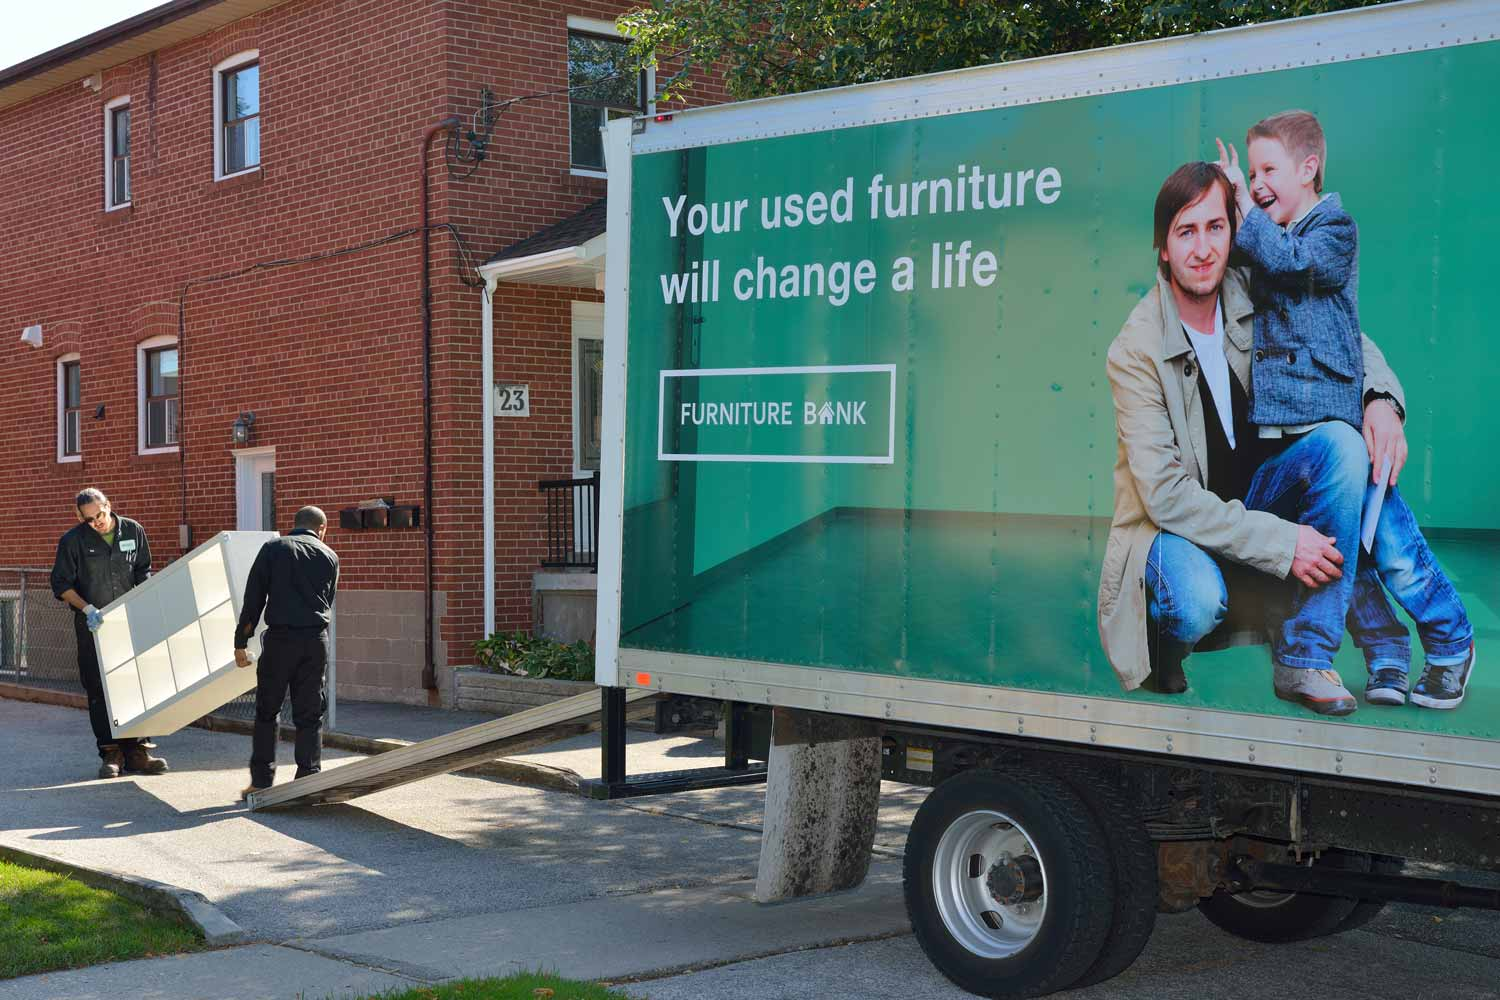 Donate Furniture Near Me Pick Up The Star Refers Furniture Bank As One Of The Best Places To